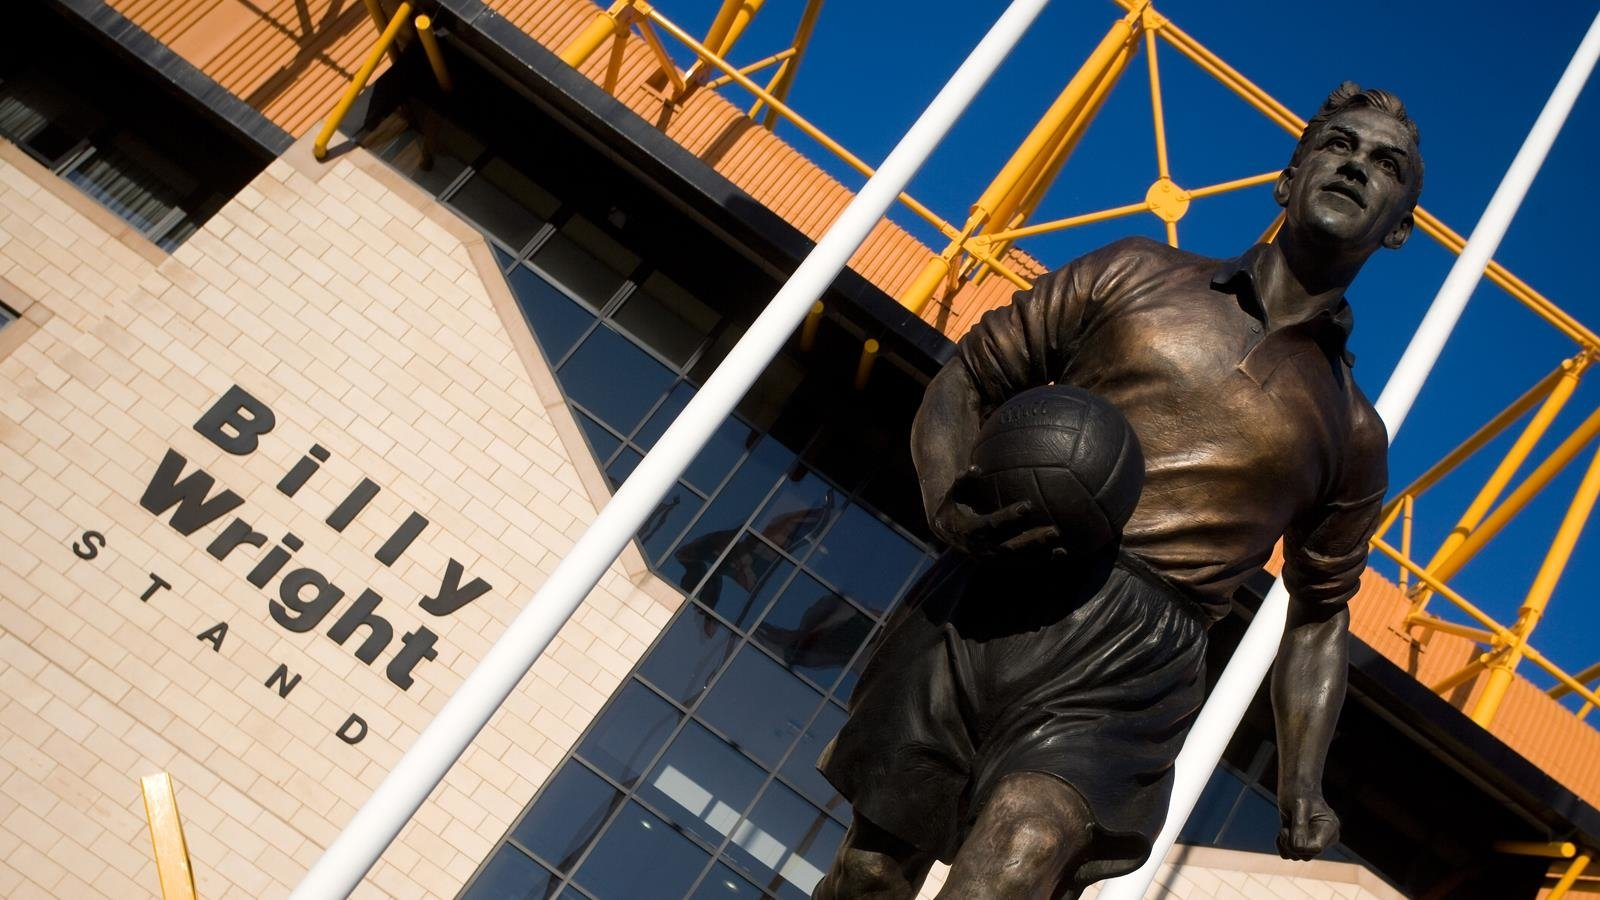 Wolverhampton Wanderers F.C. Wallpaper and Background Image | 1600x900 | ID:679193 - Wallpaper Abyss